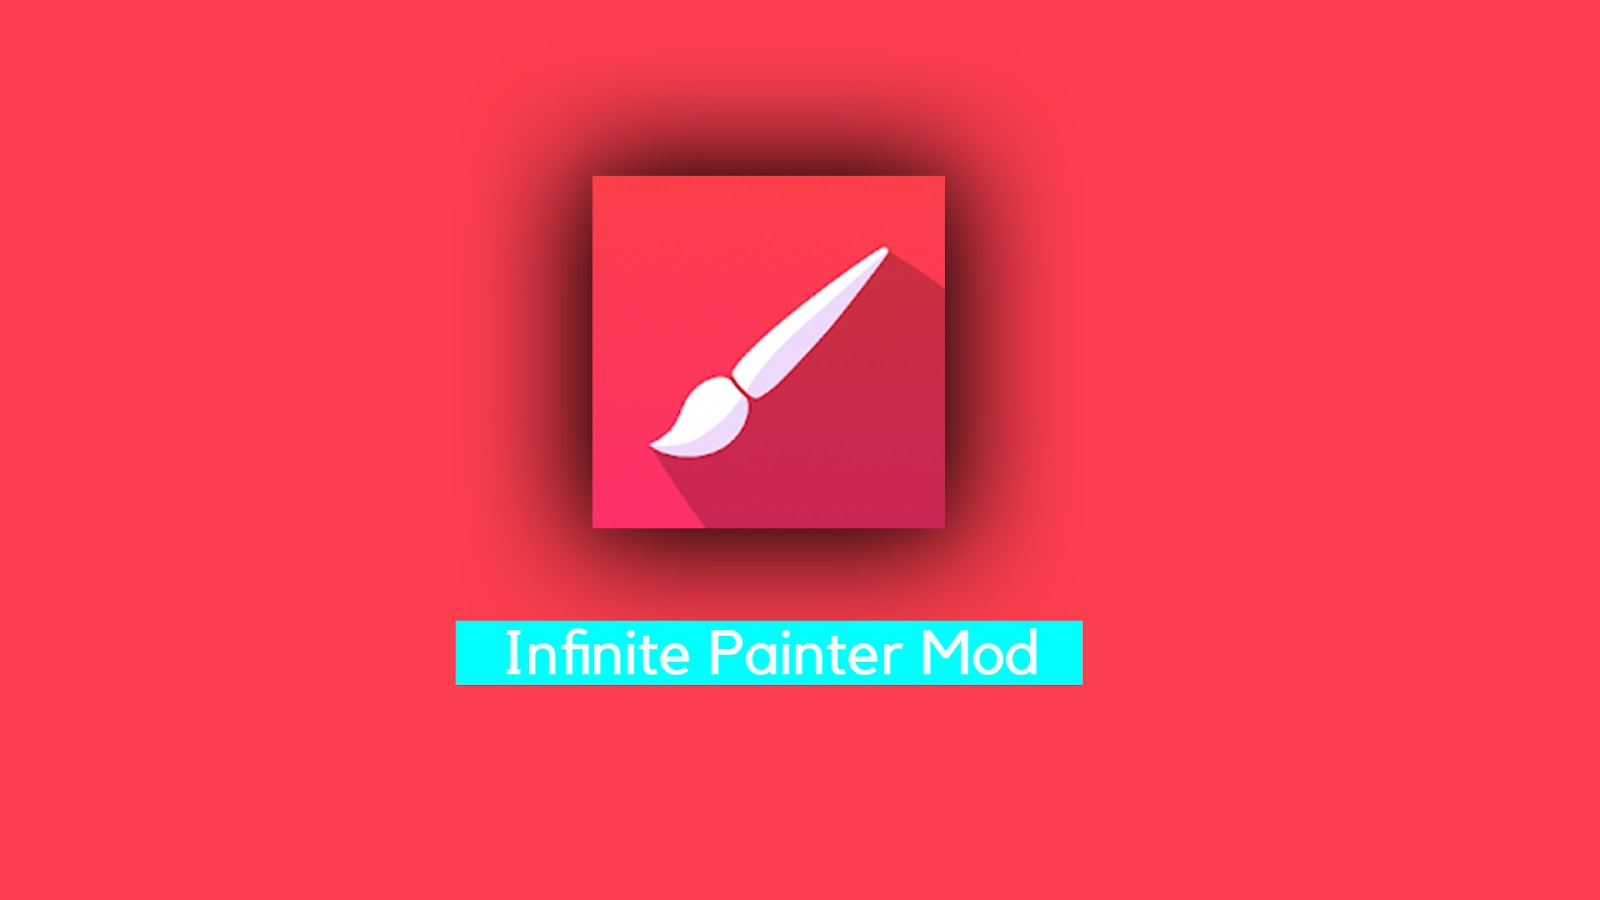 Infinite Painter Mod apk 6.3.64 (Full Unlocked) Latest Download